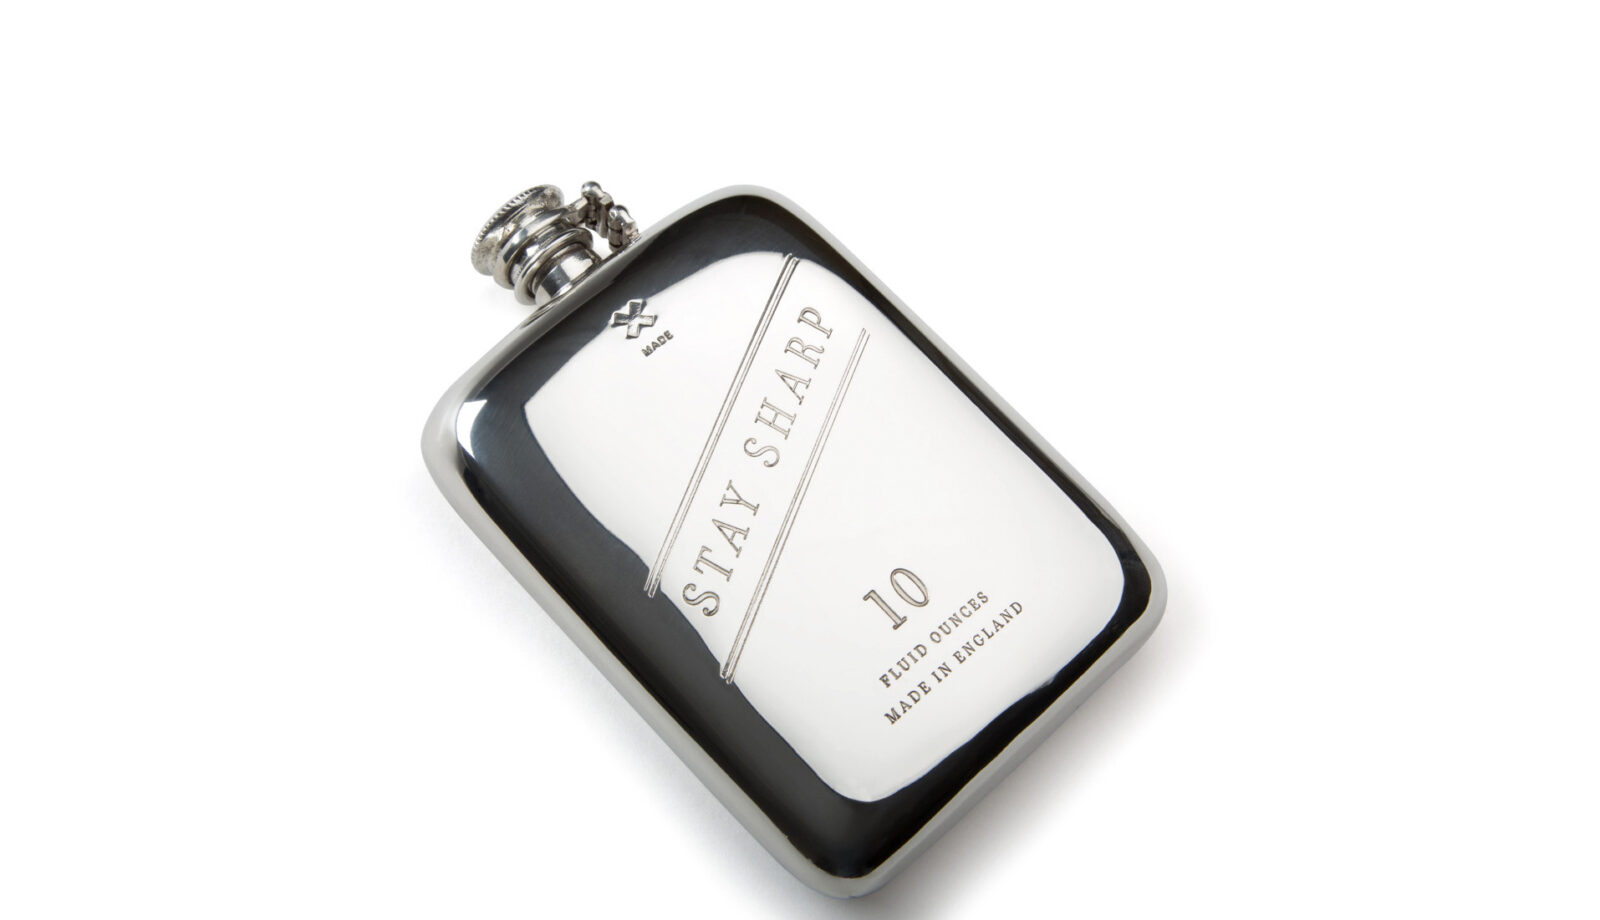 10 oz Stay Sharp Pewter Flask copy 1600x920 - 10 oz Stay Sharp Pewter Flask